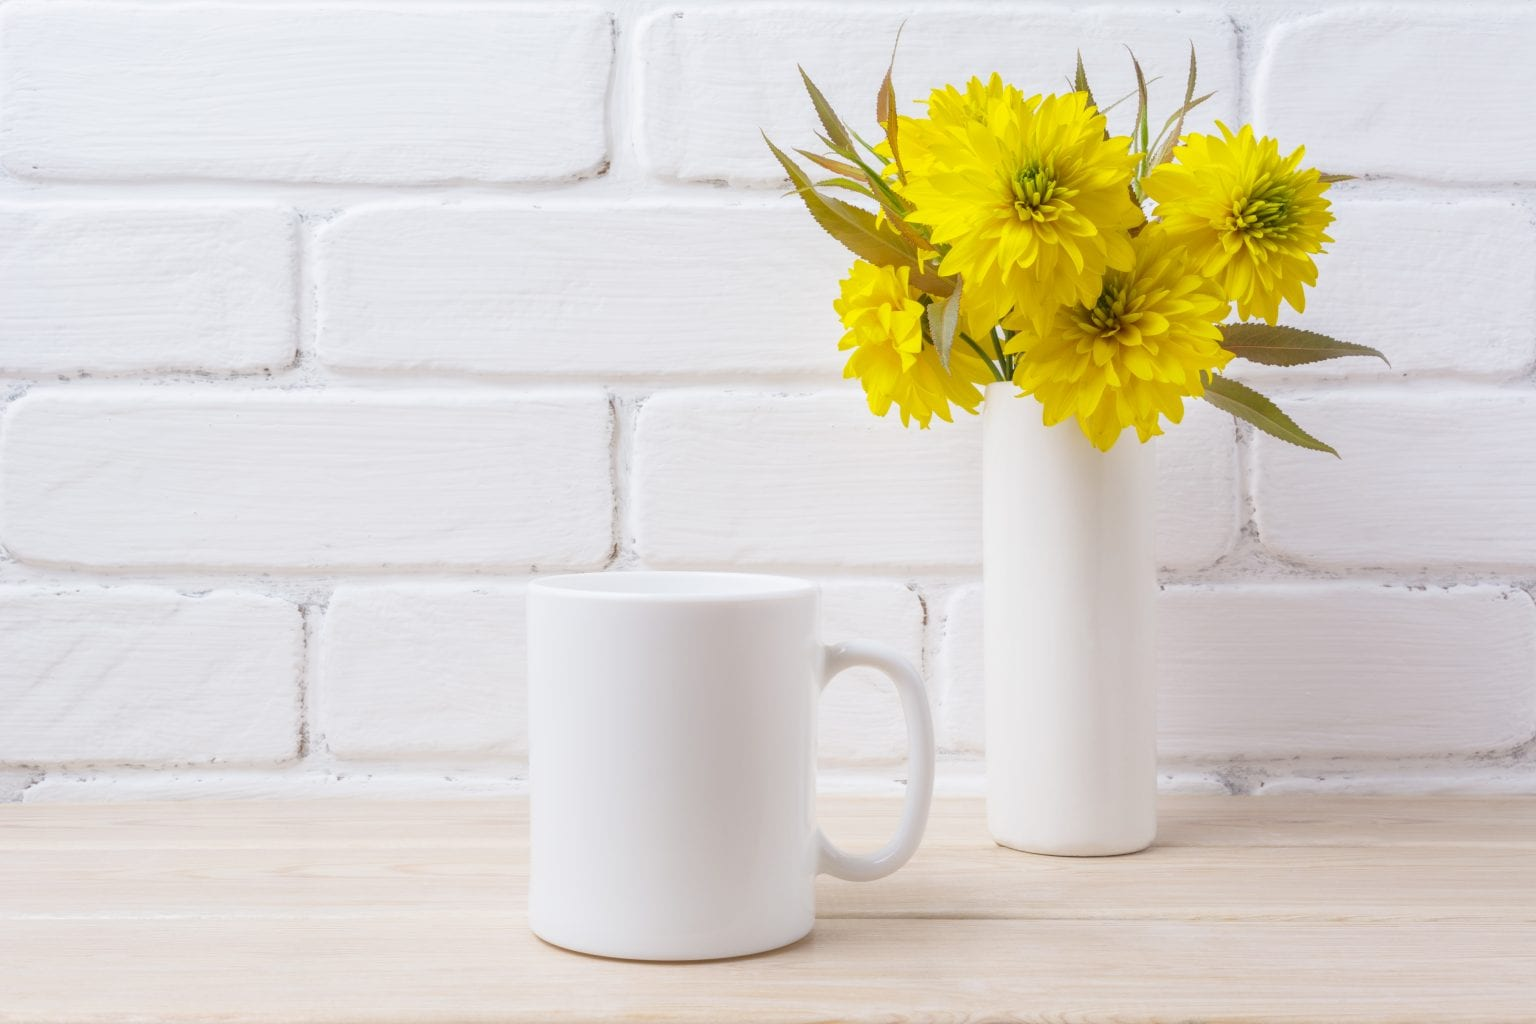 White coffee mug mockup with yellow rudbeckia Golden Ball flower. Empty mug mock up for design promotion.